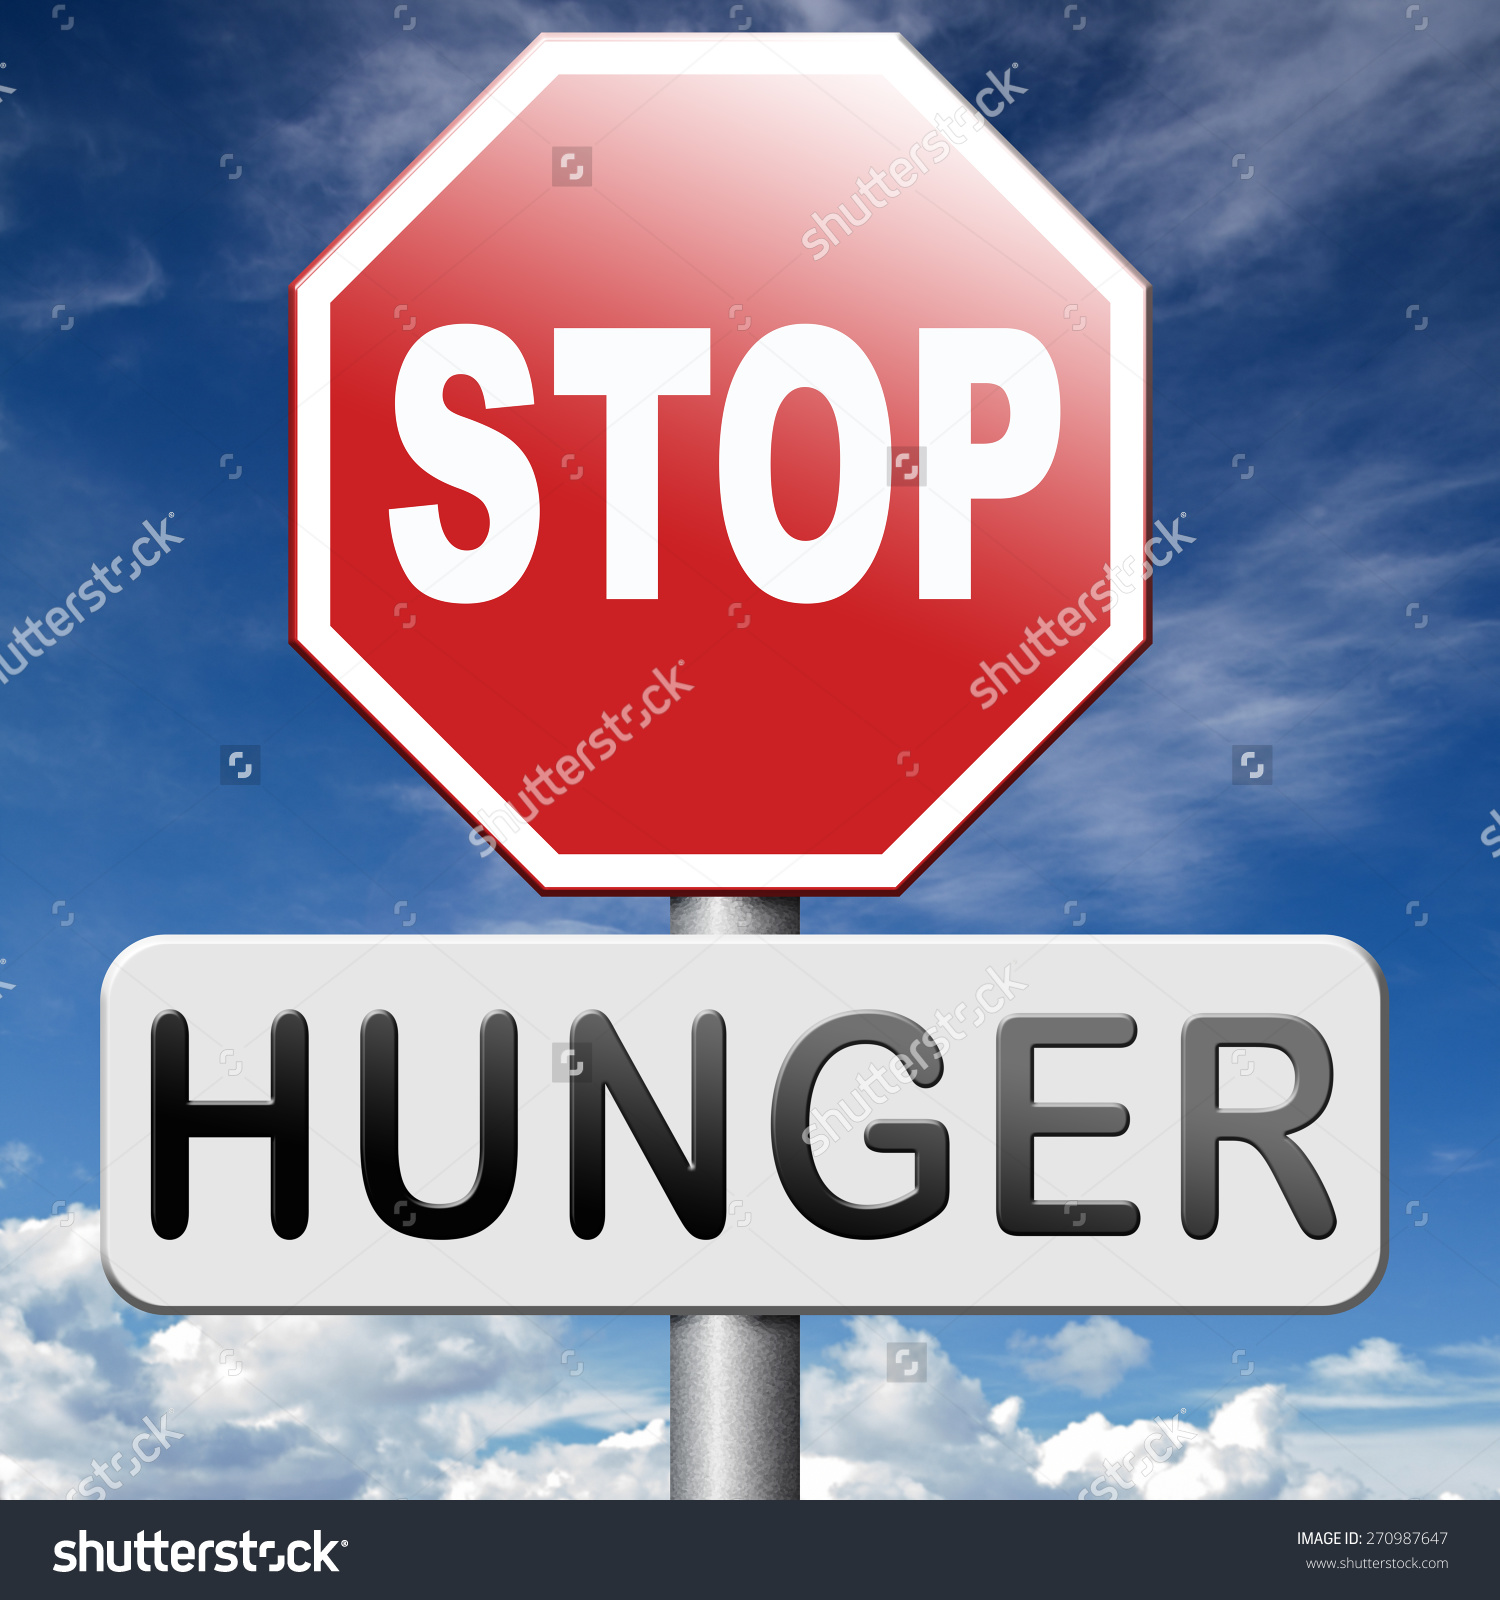 Famine clipart hunger And stop hunger Stop (33+)